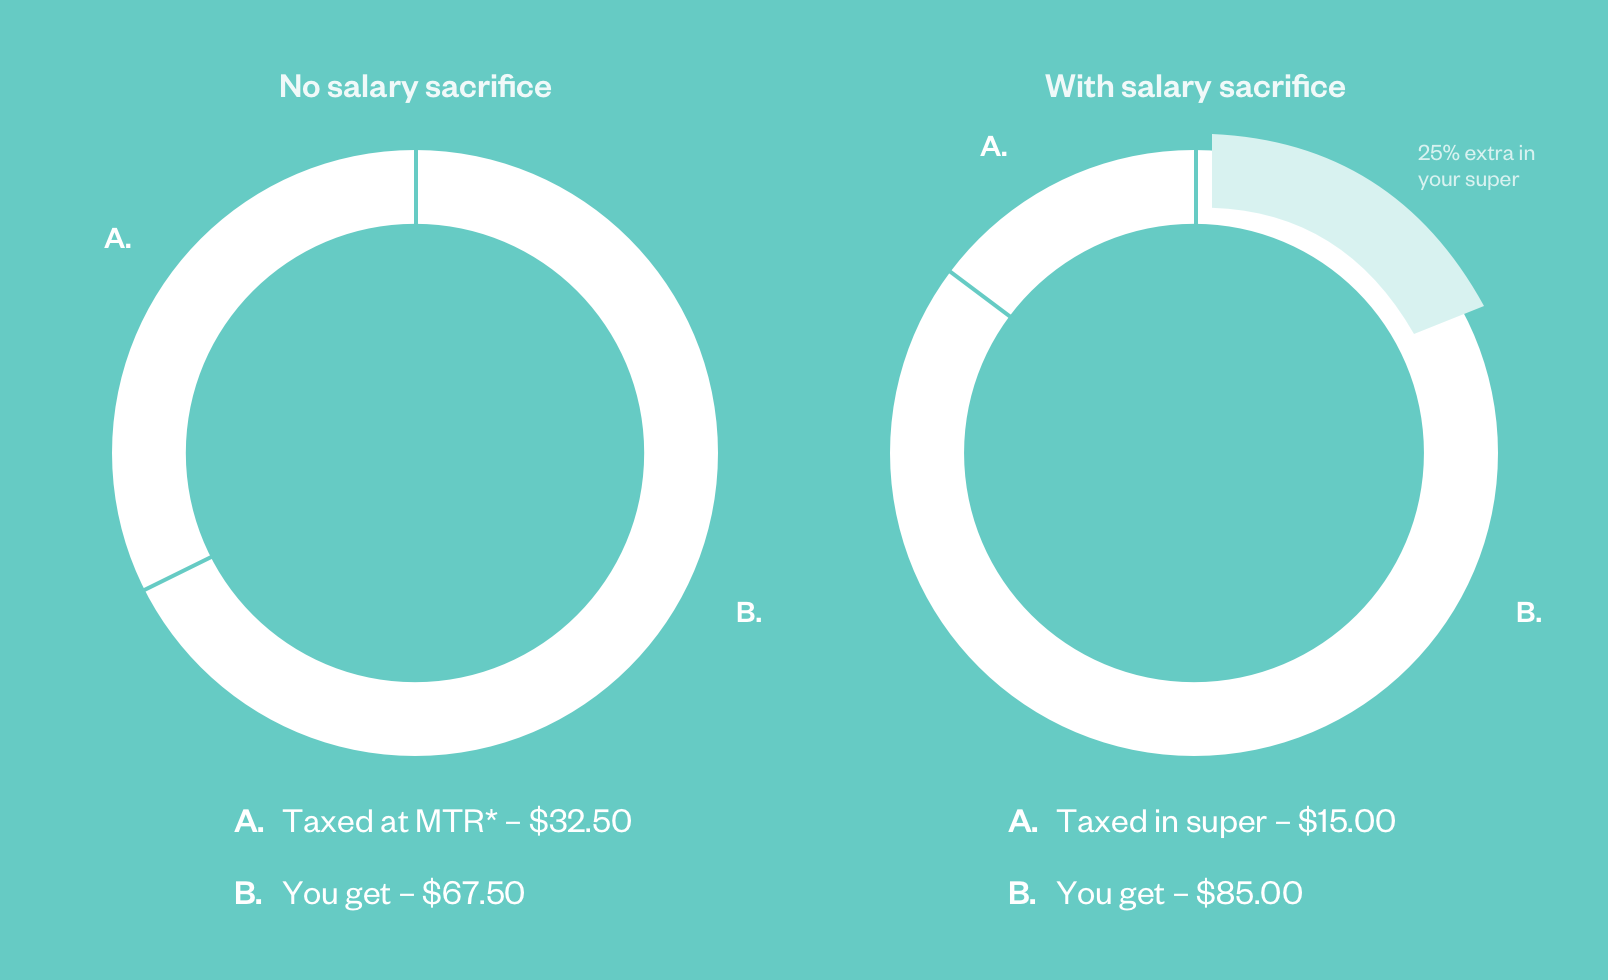 Salary sacrifice simplified chart